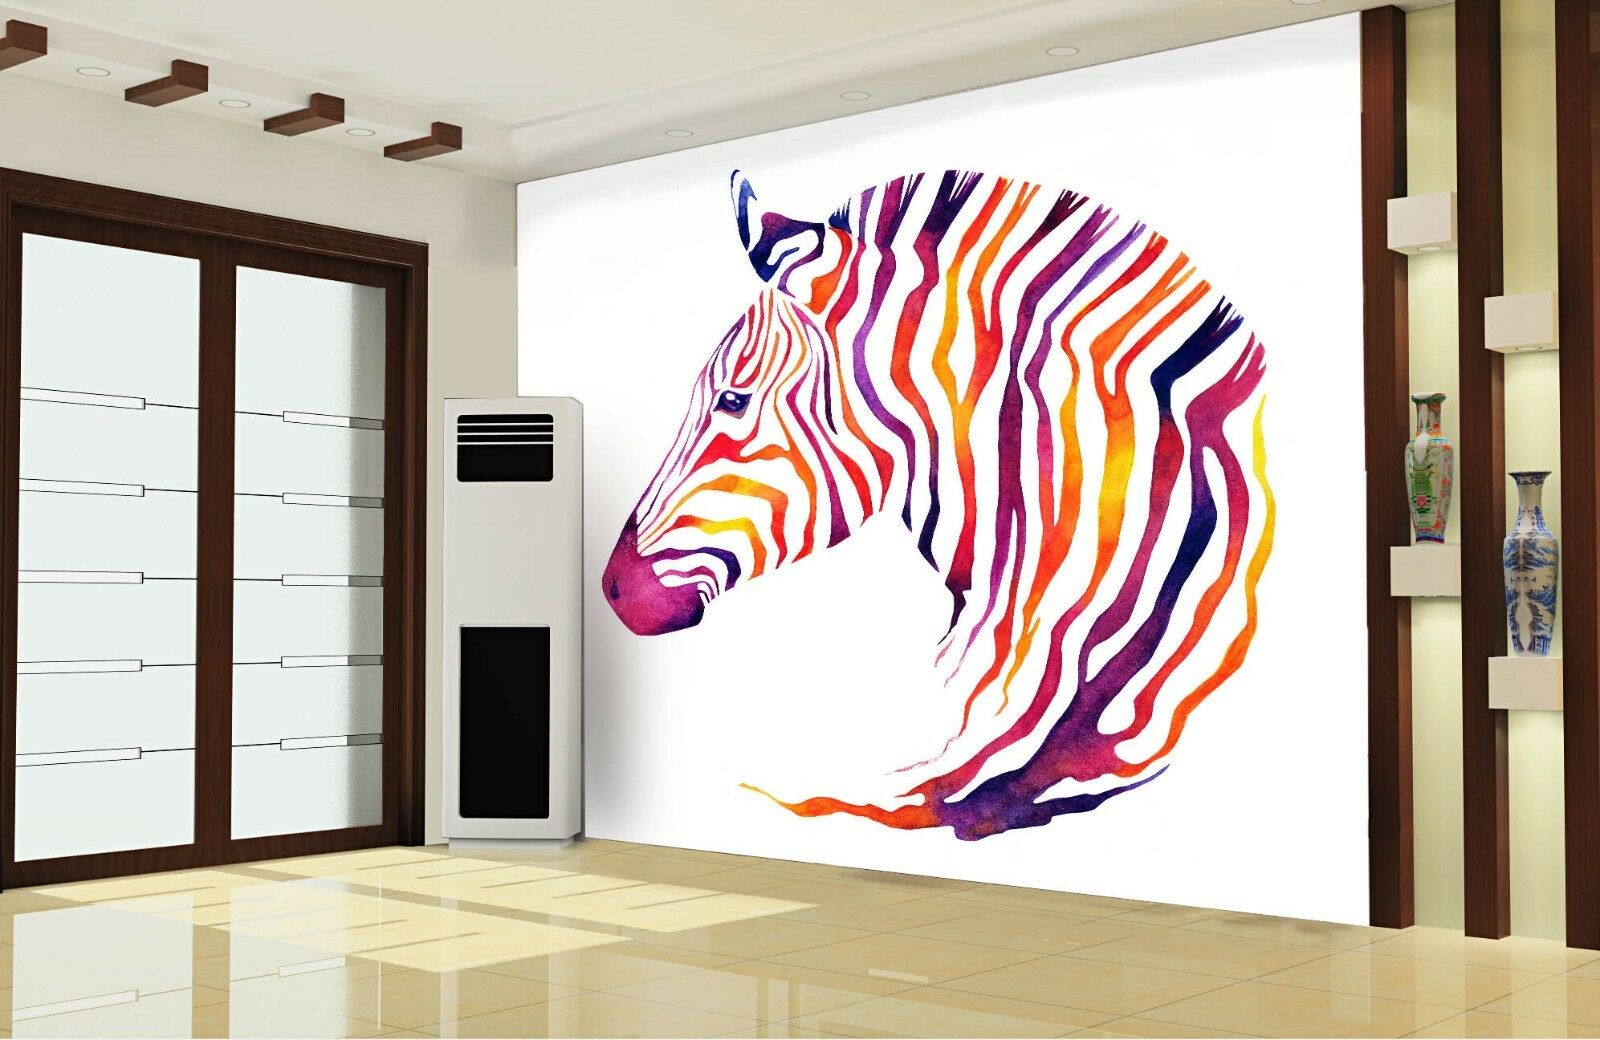 3D Farbeed Striped Zebra Paper Wall Print Wall Decal Wall Deco Indoor Murals